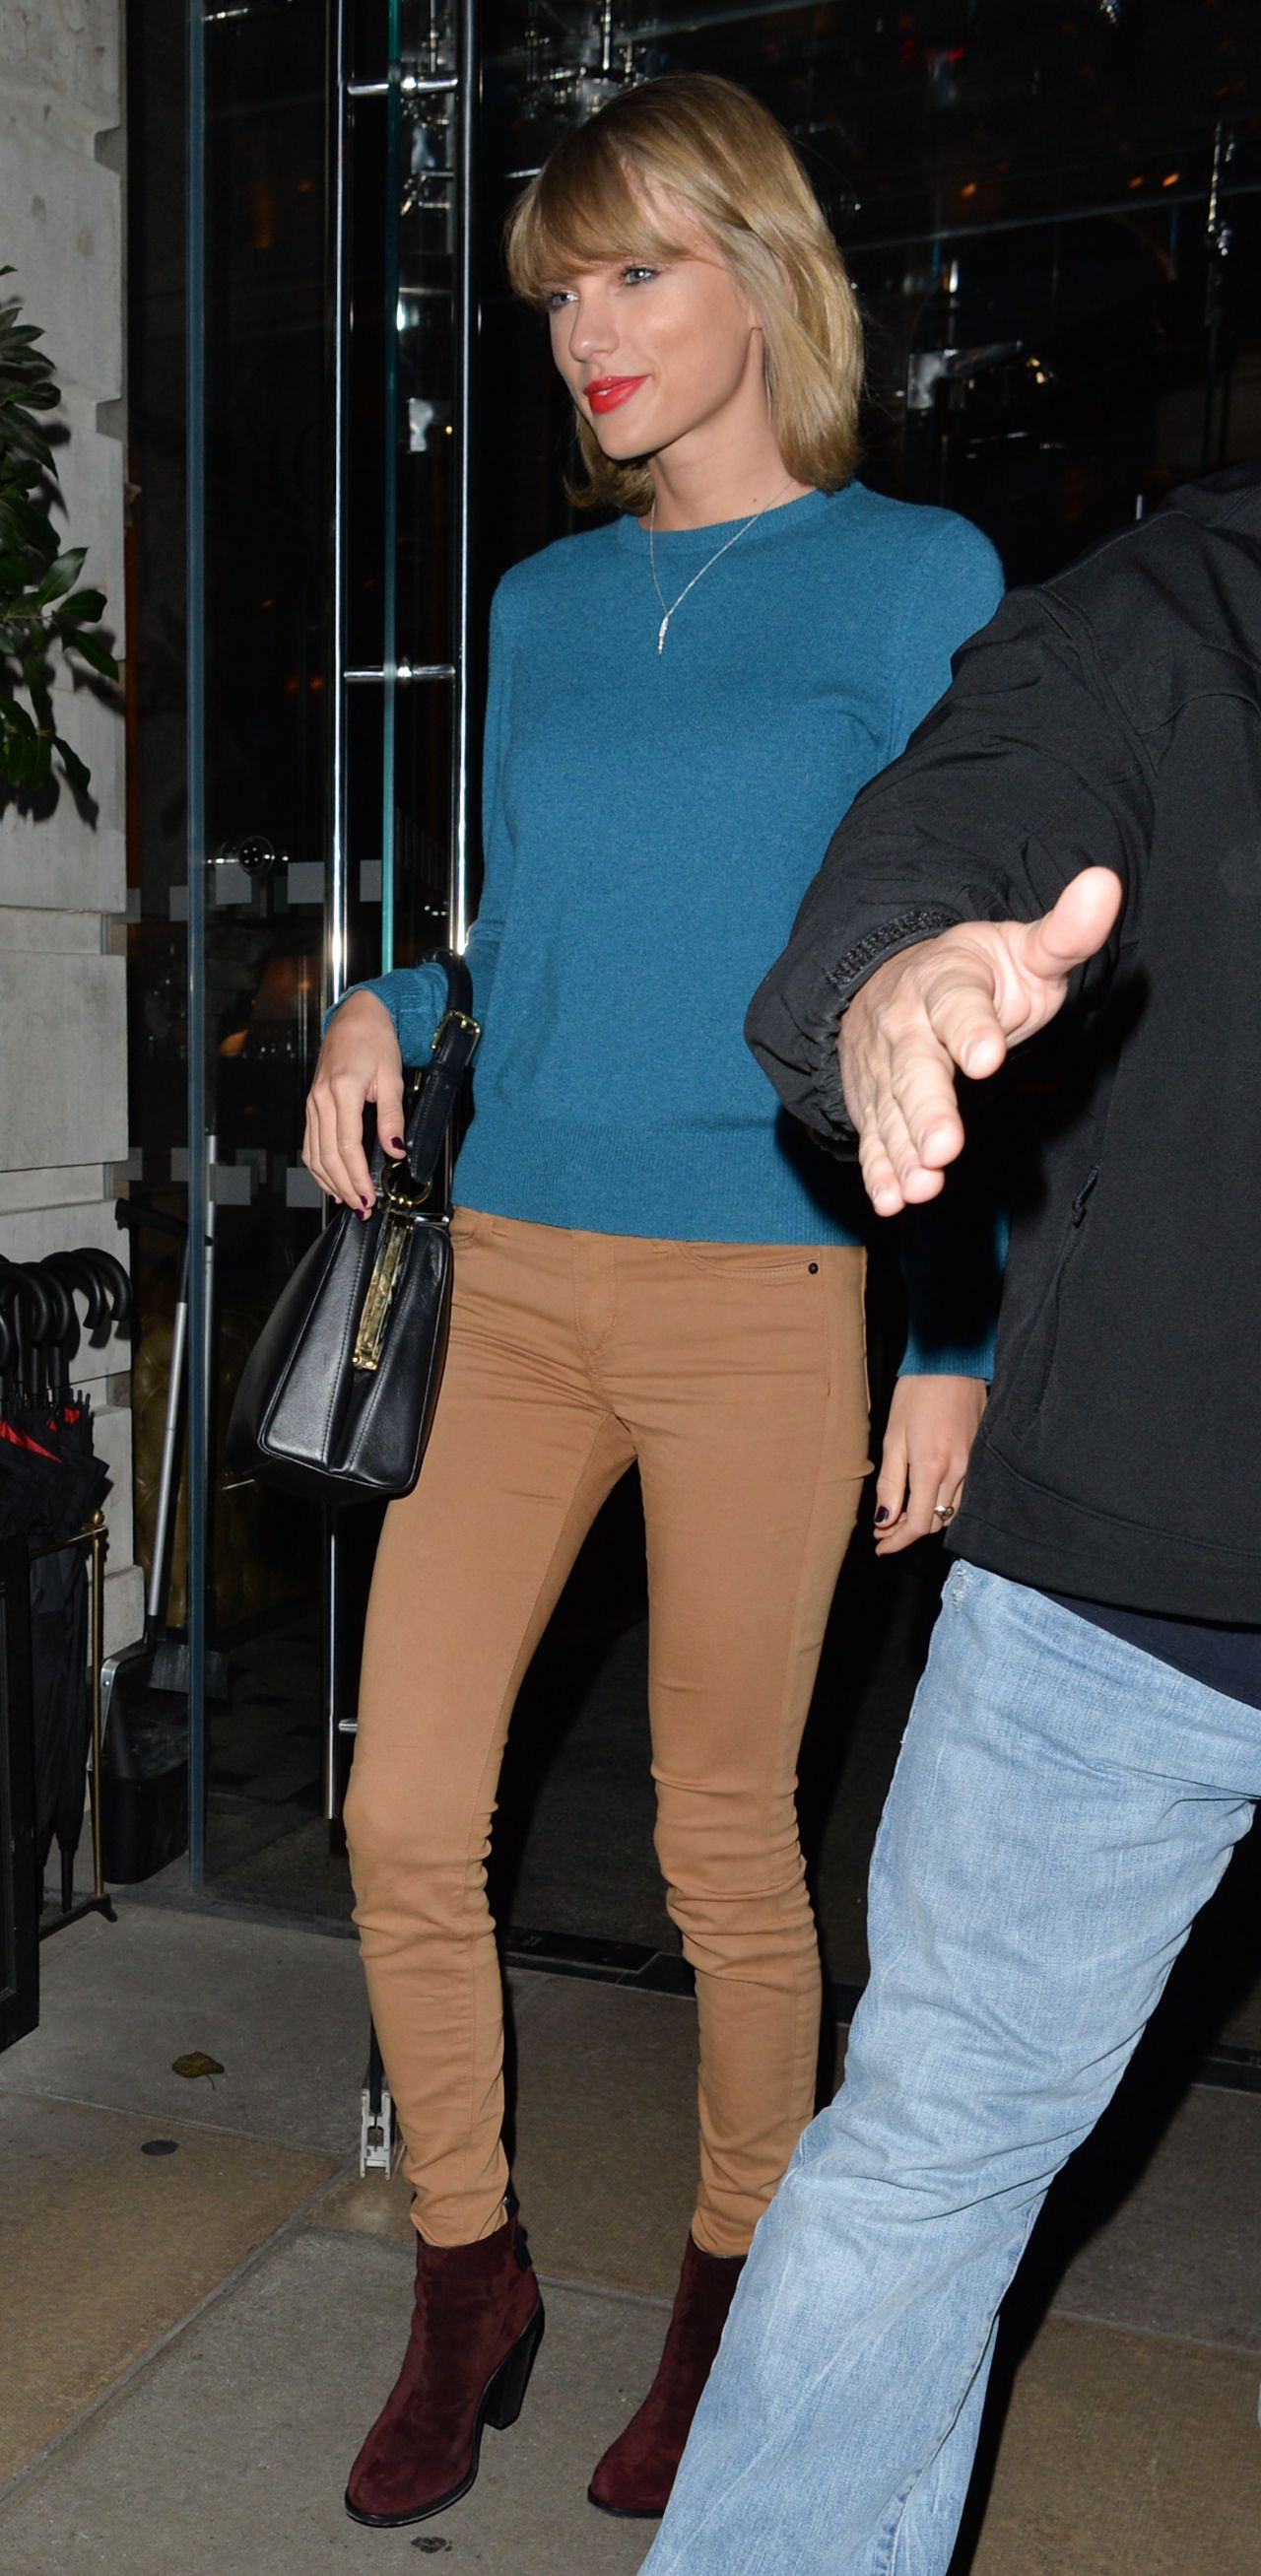 Taylor Swift Casual Style  Leaving a Hotel in London  November 2014